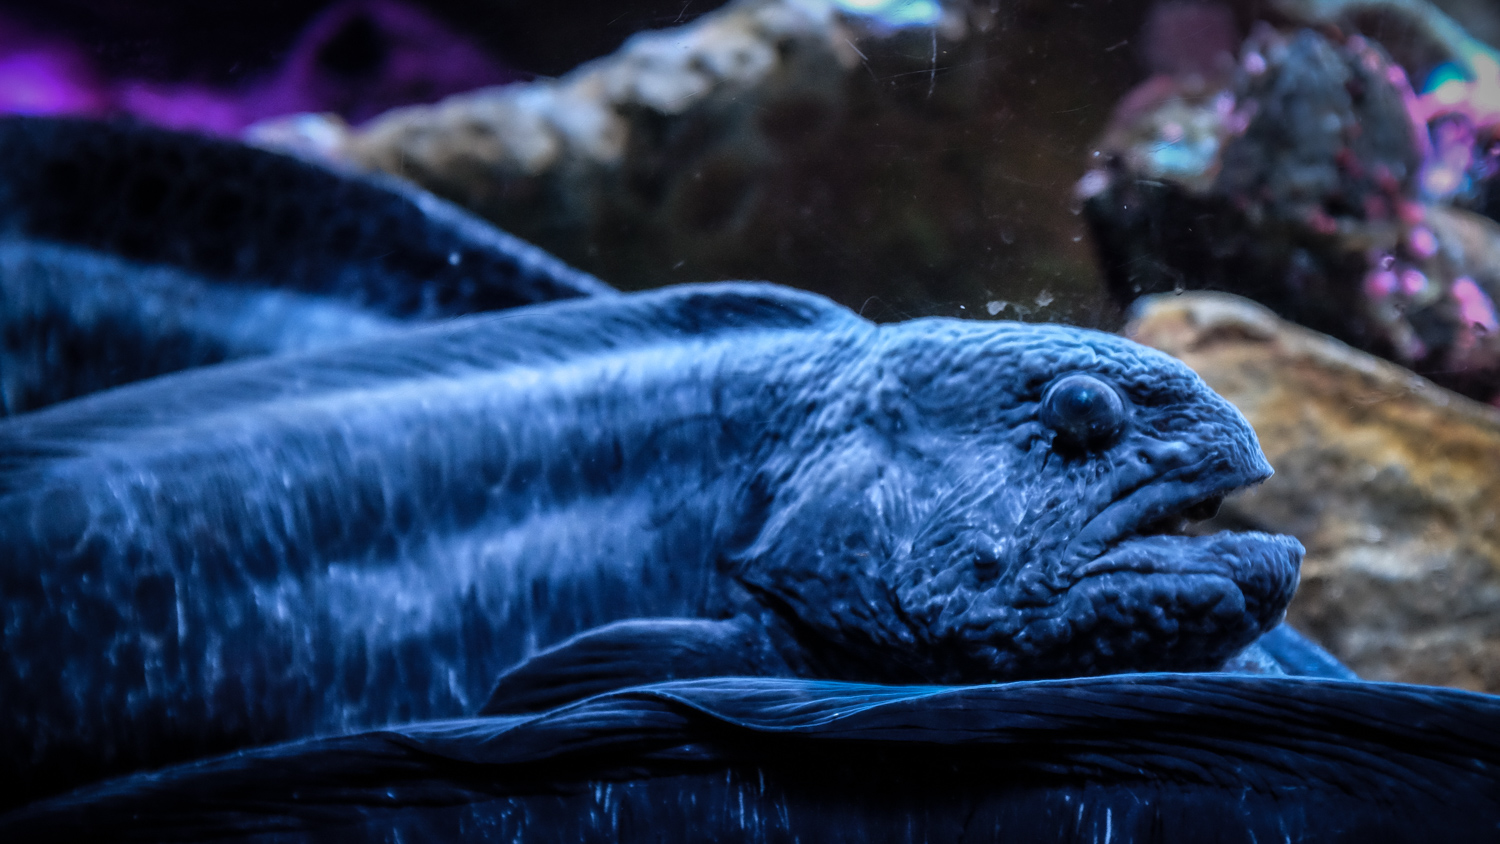 Photo of a strange fish (eel). How to Take Clear and Creative Photos at Aquariums